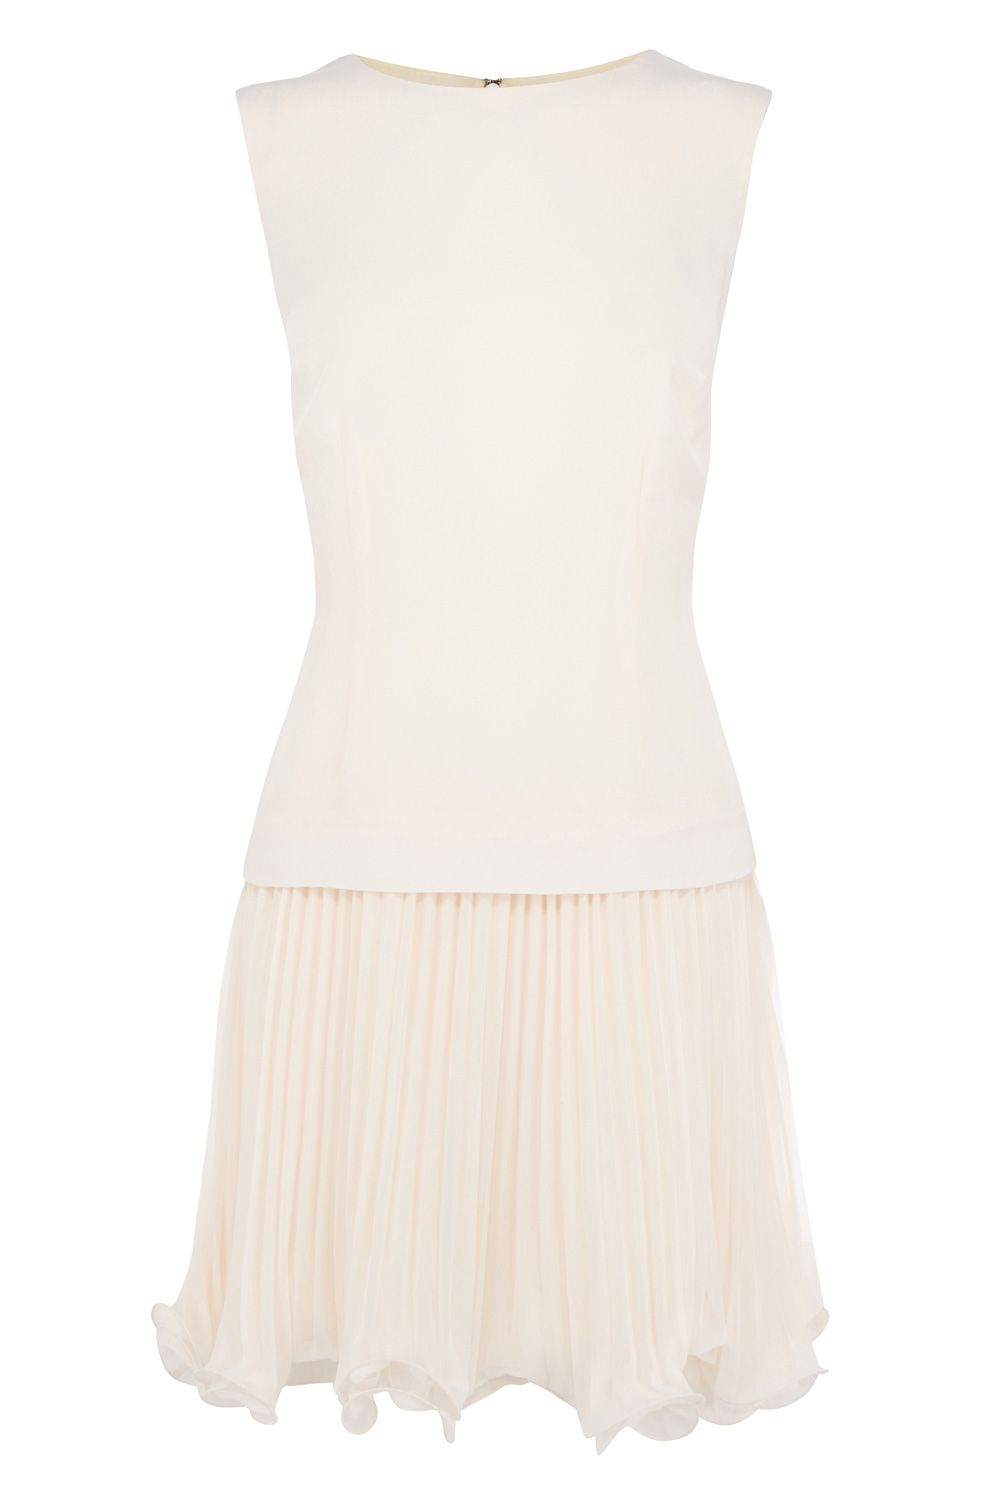 Kudos pleat dress